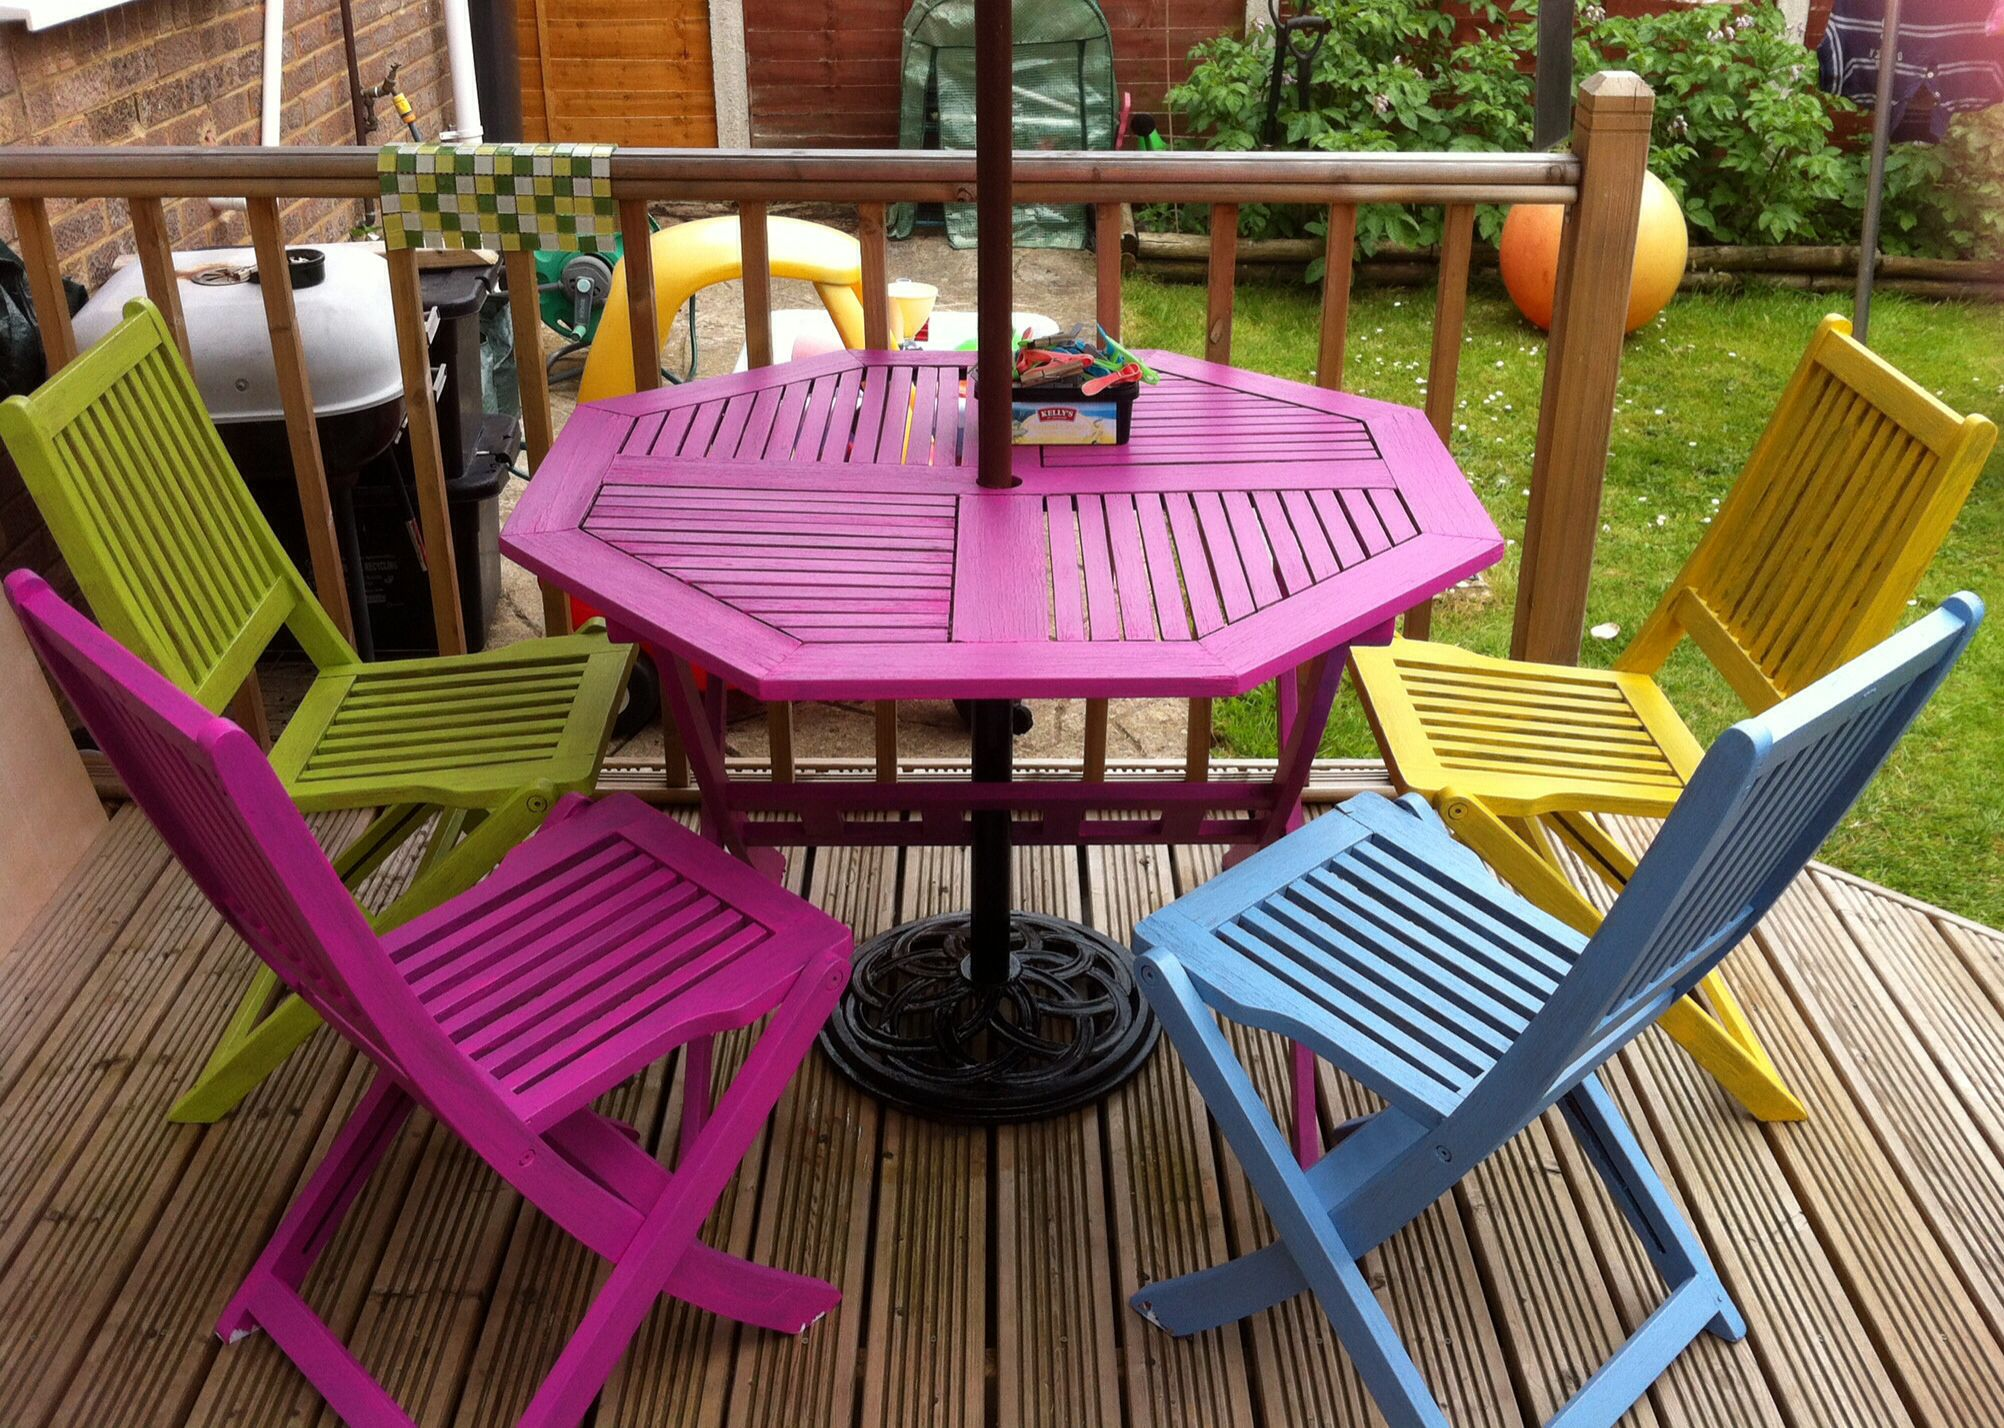 Garden Furniture S bright painted garden furniture, adds a bit of colour to the